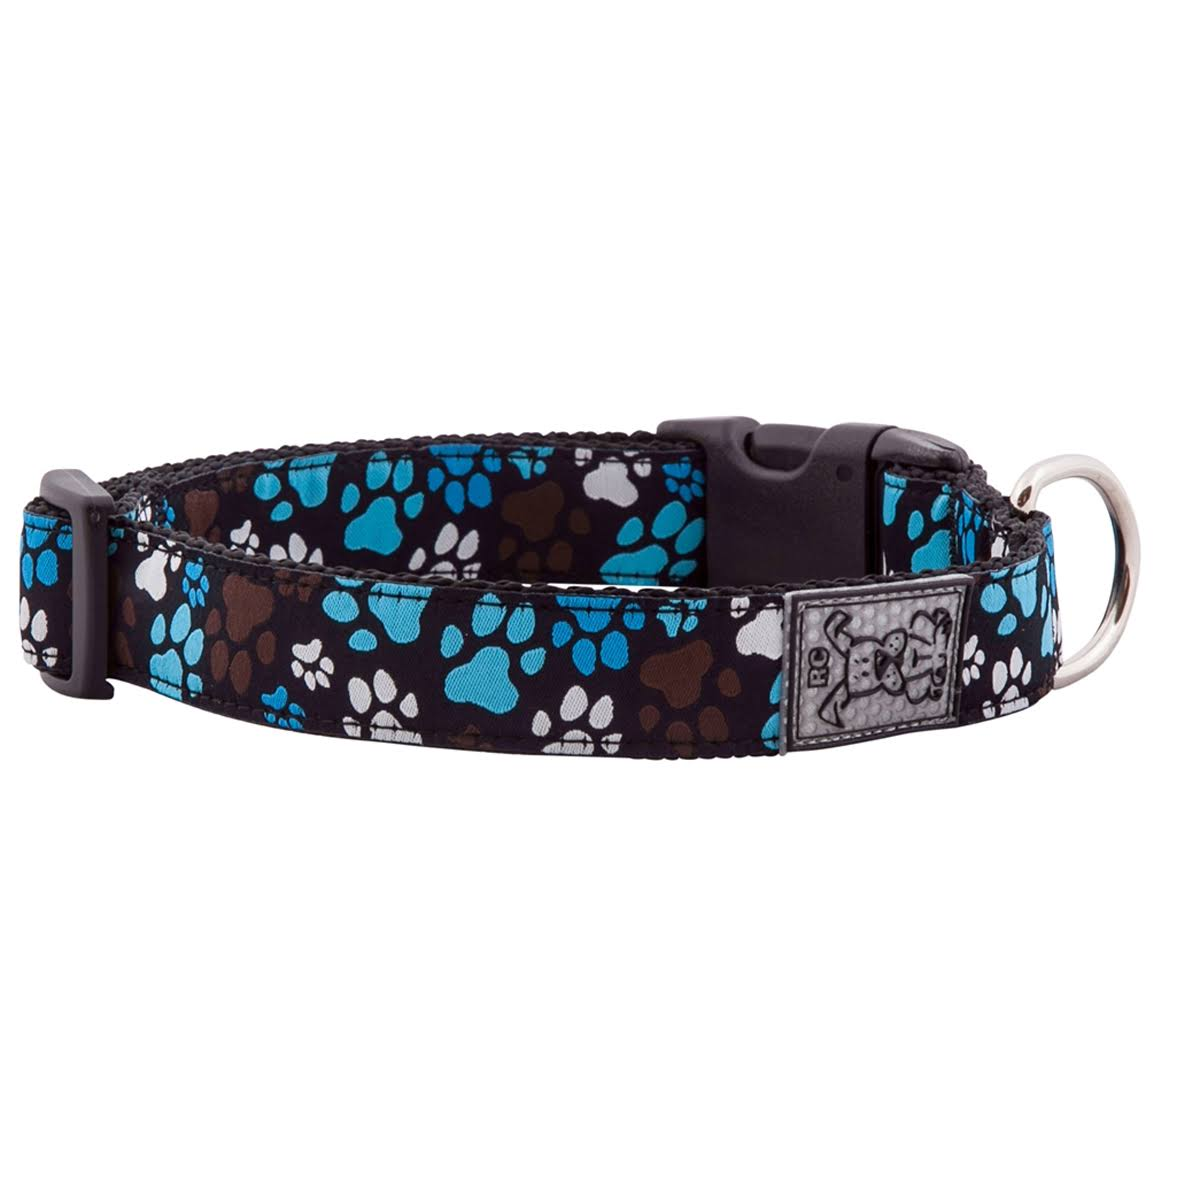 RC Pet Products Adjustable Dog Clip Collar - Pitter Patter, Chocolate